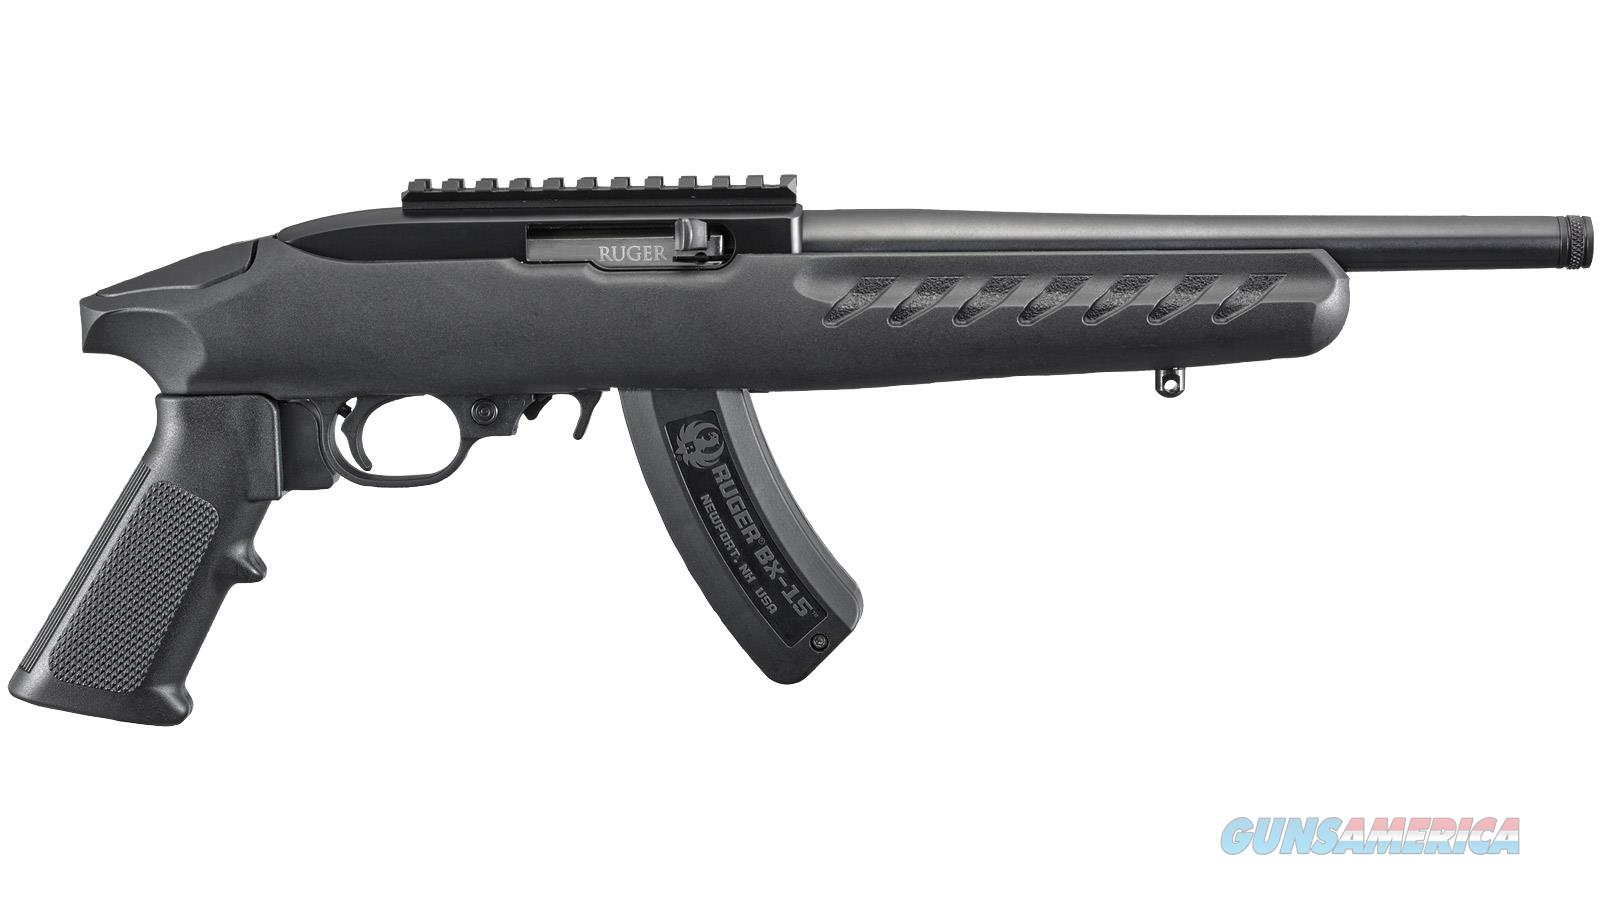 "RUGER CHARGER 22LR 10"" 15RD 4923  Guns > Pistols > Ruger Semi-Auto Pistols > Charger Series"